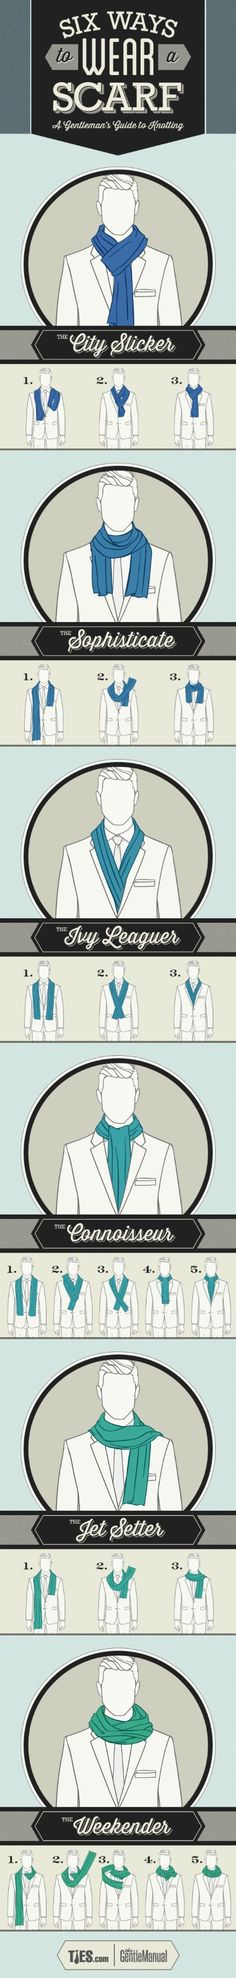 Six Ways To Wear A Scarf